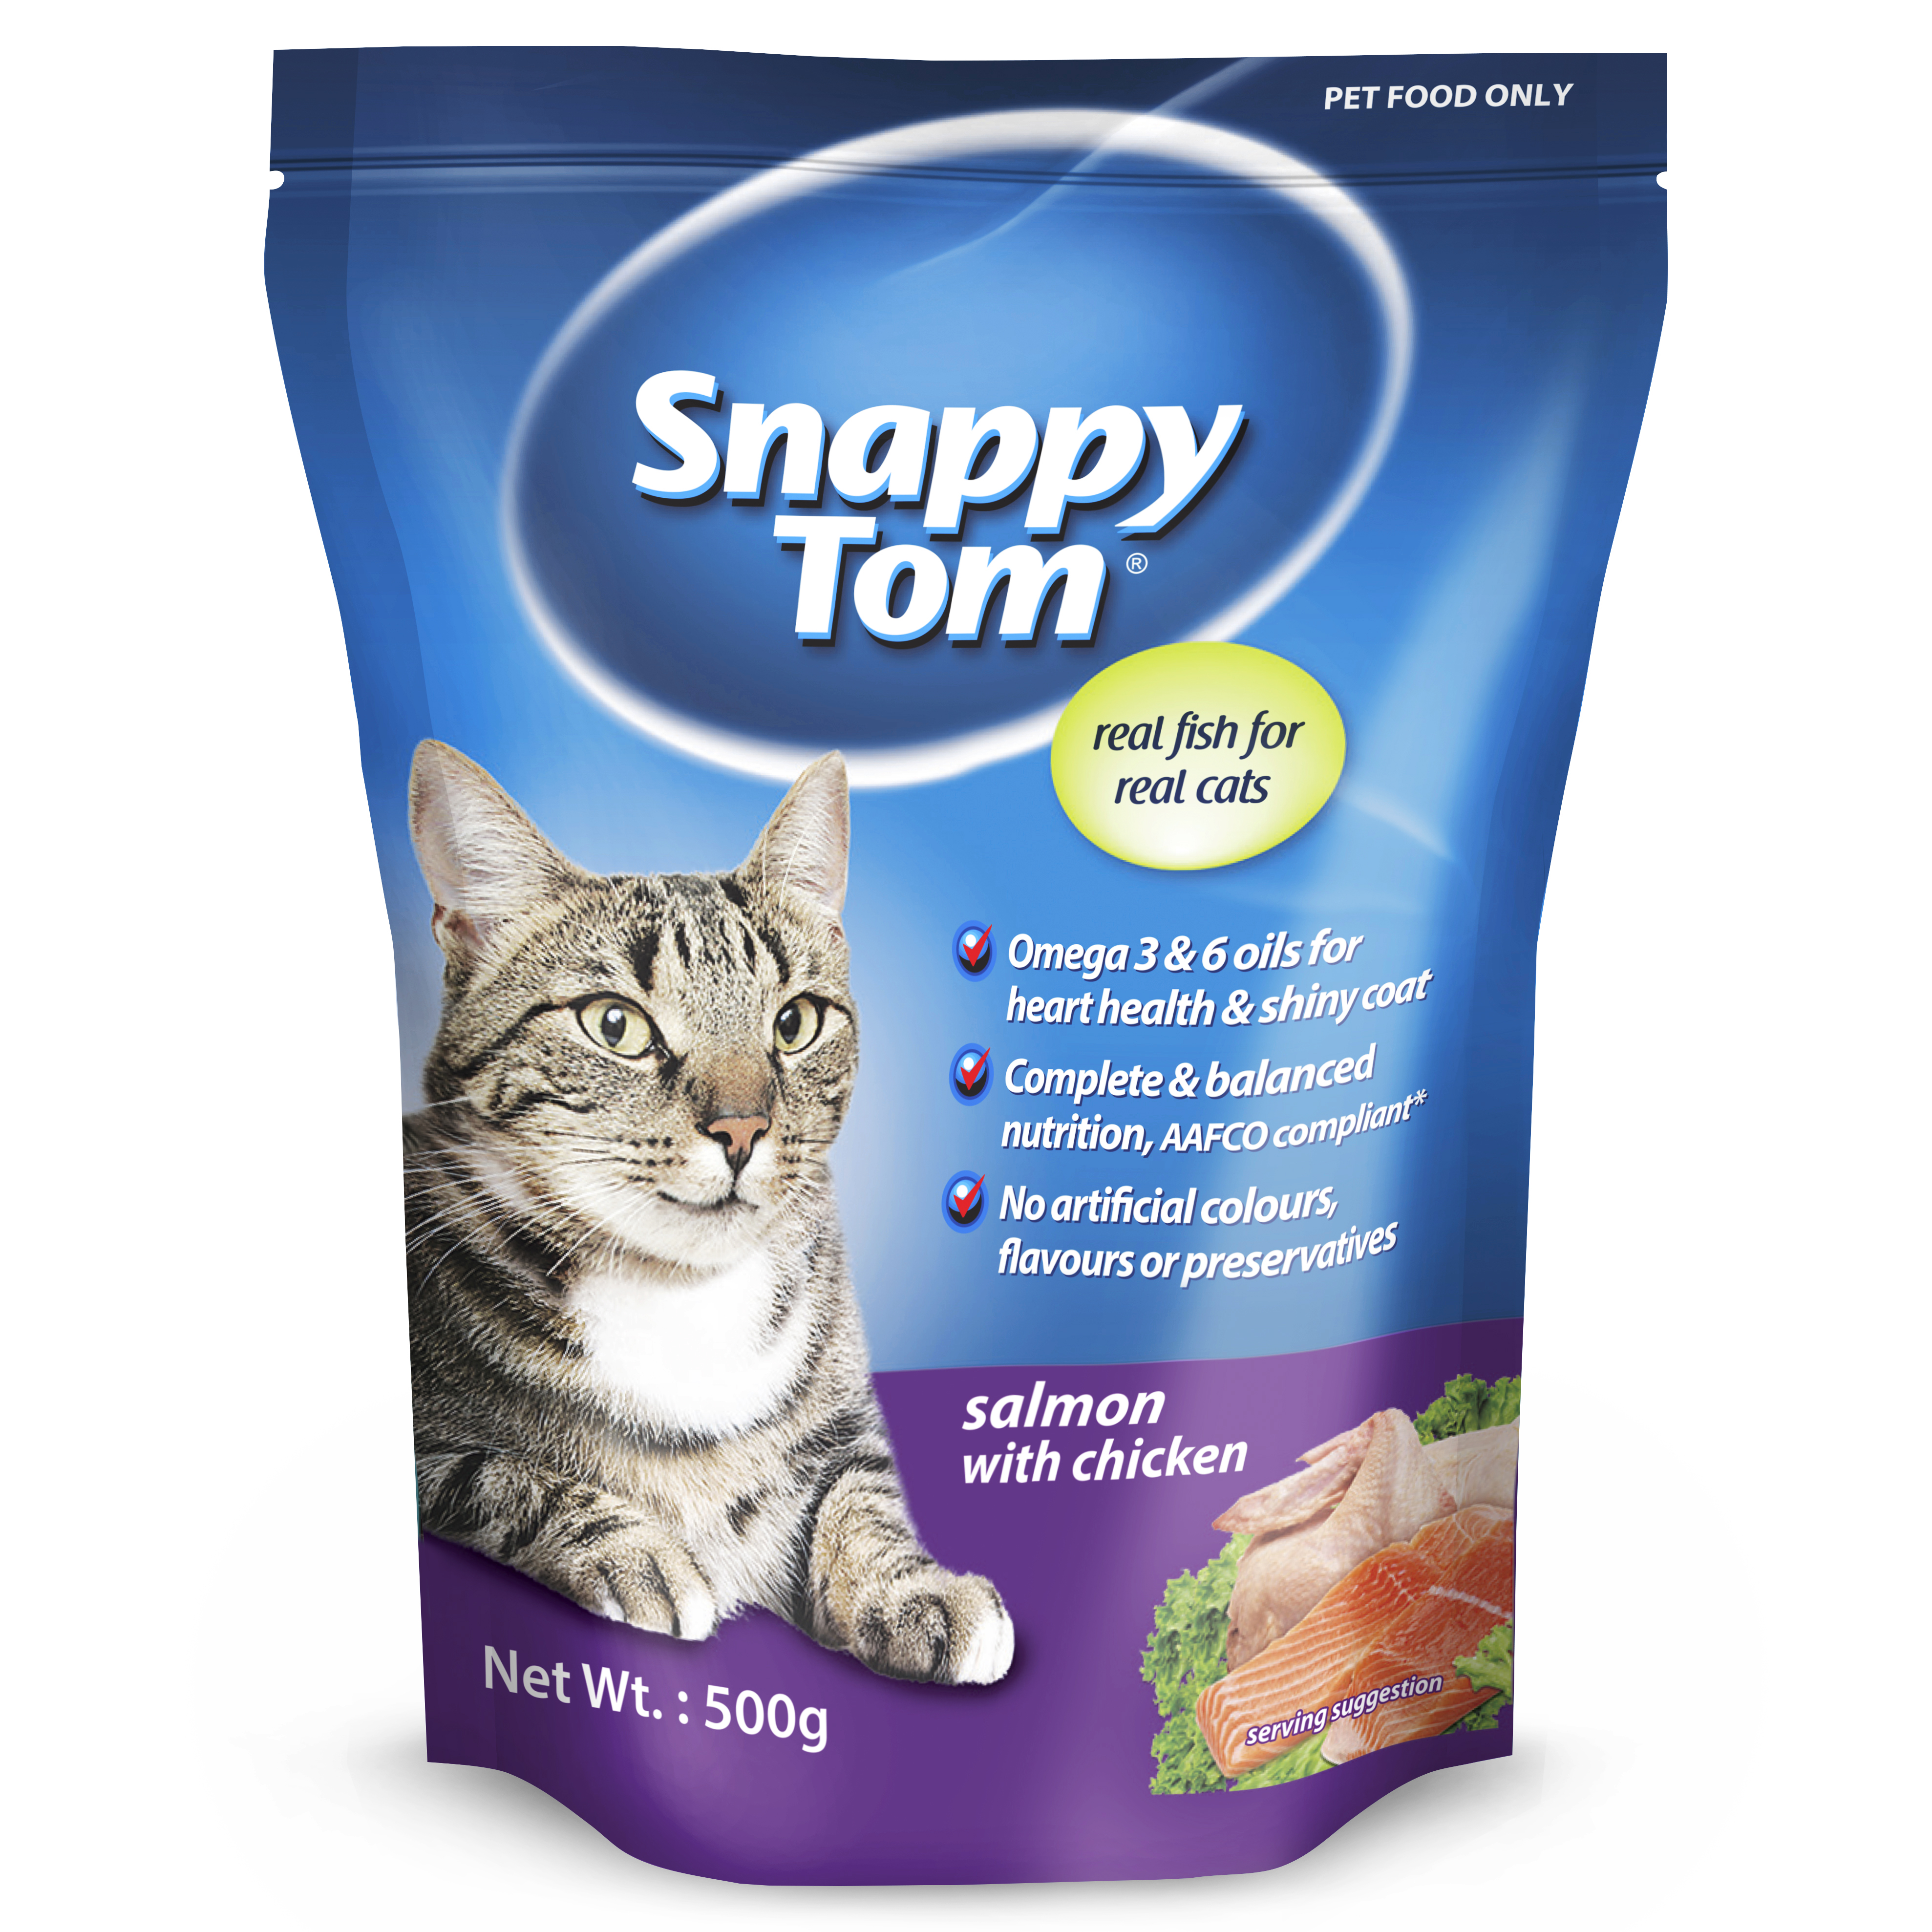 snappy-tom-dry-cat-food-salmon-with-chicken-500g-1